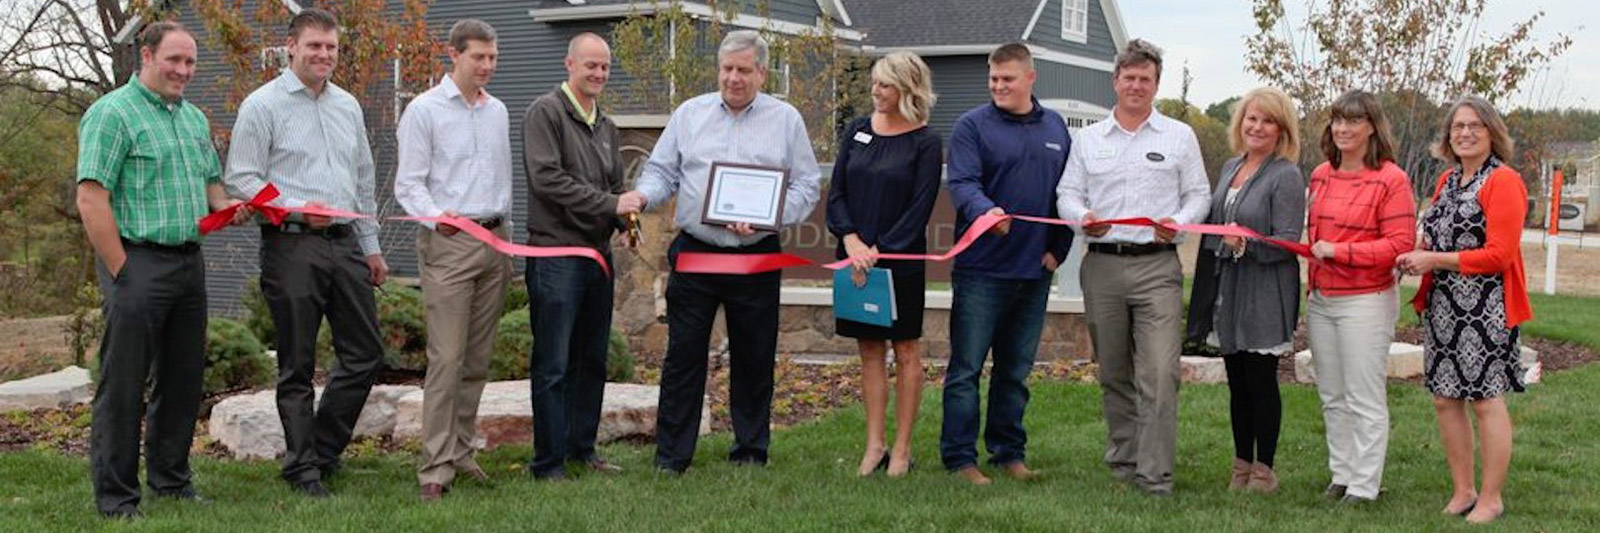 ApexRibbonCutting.jpg